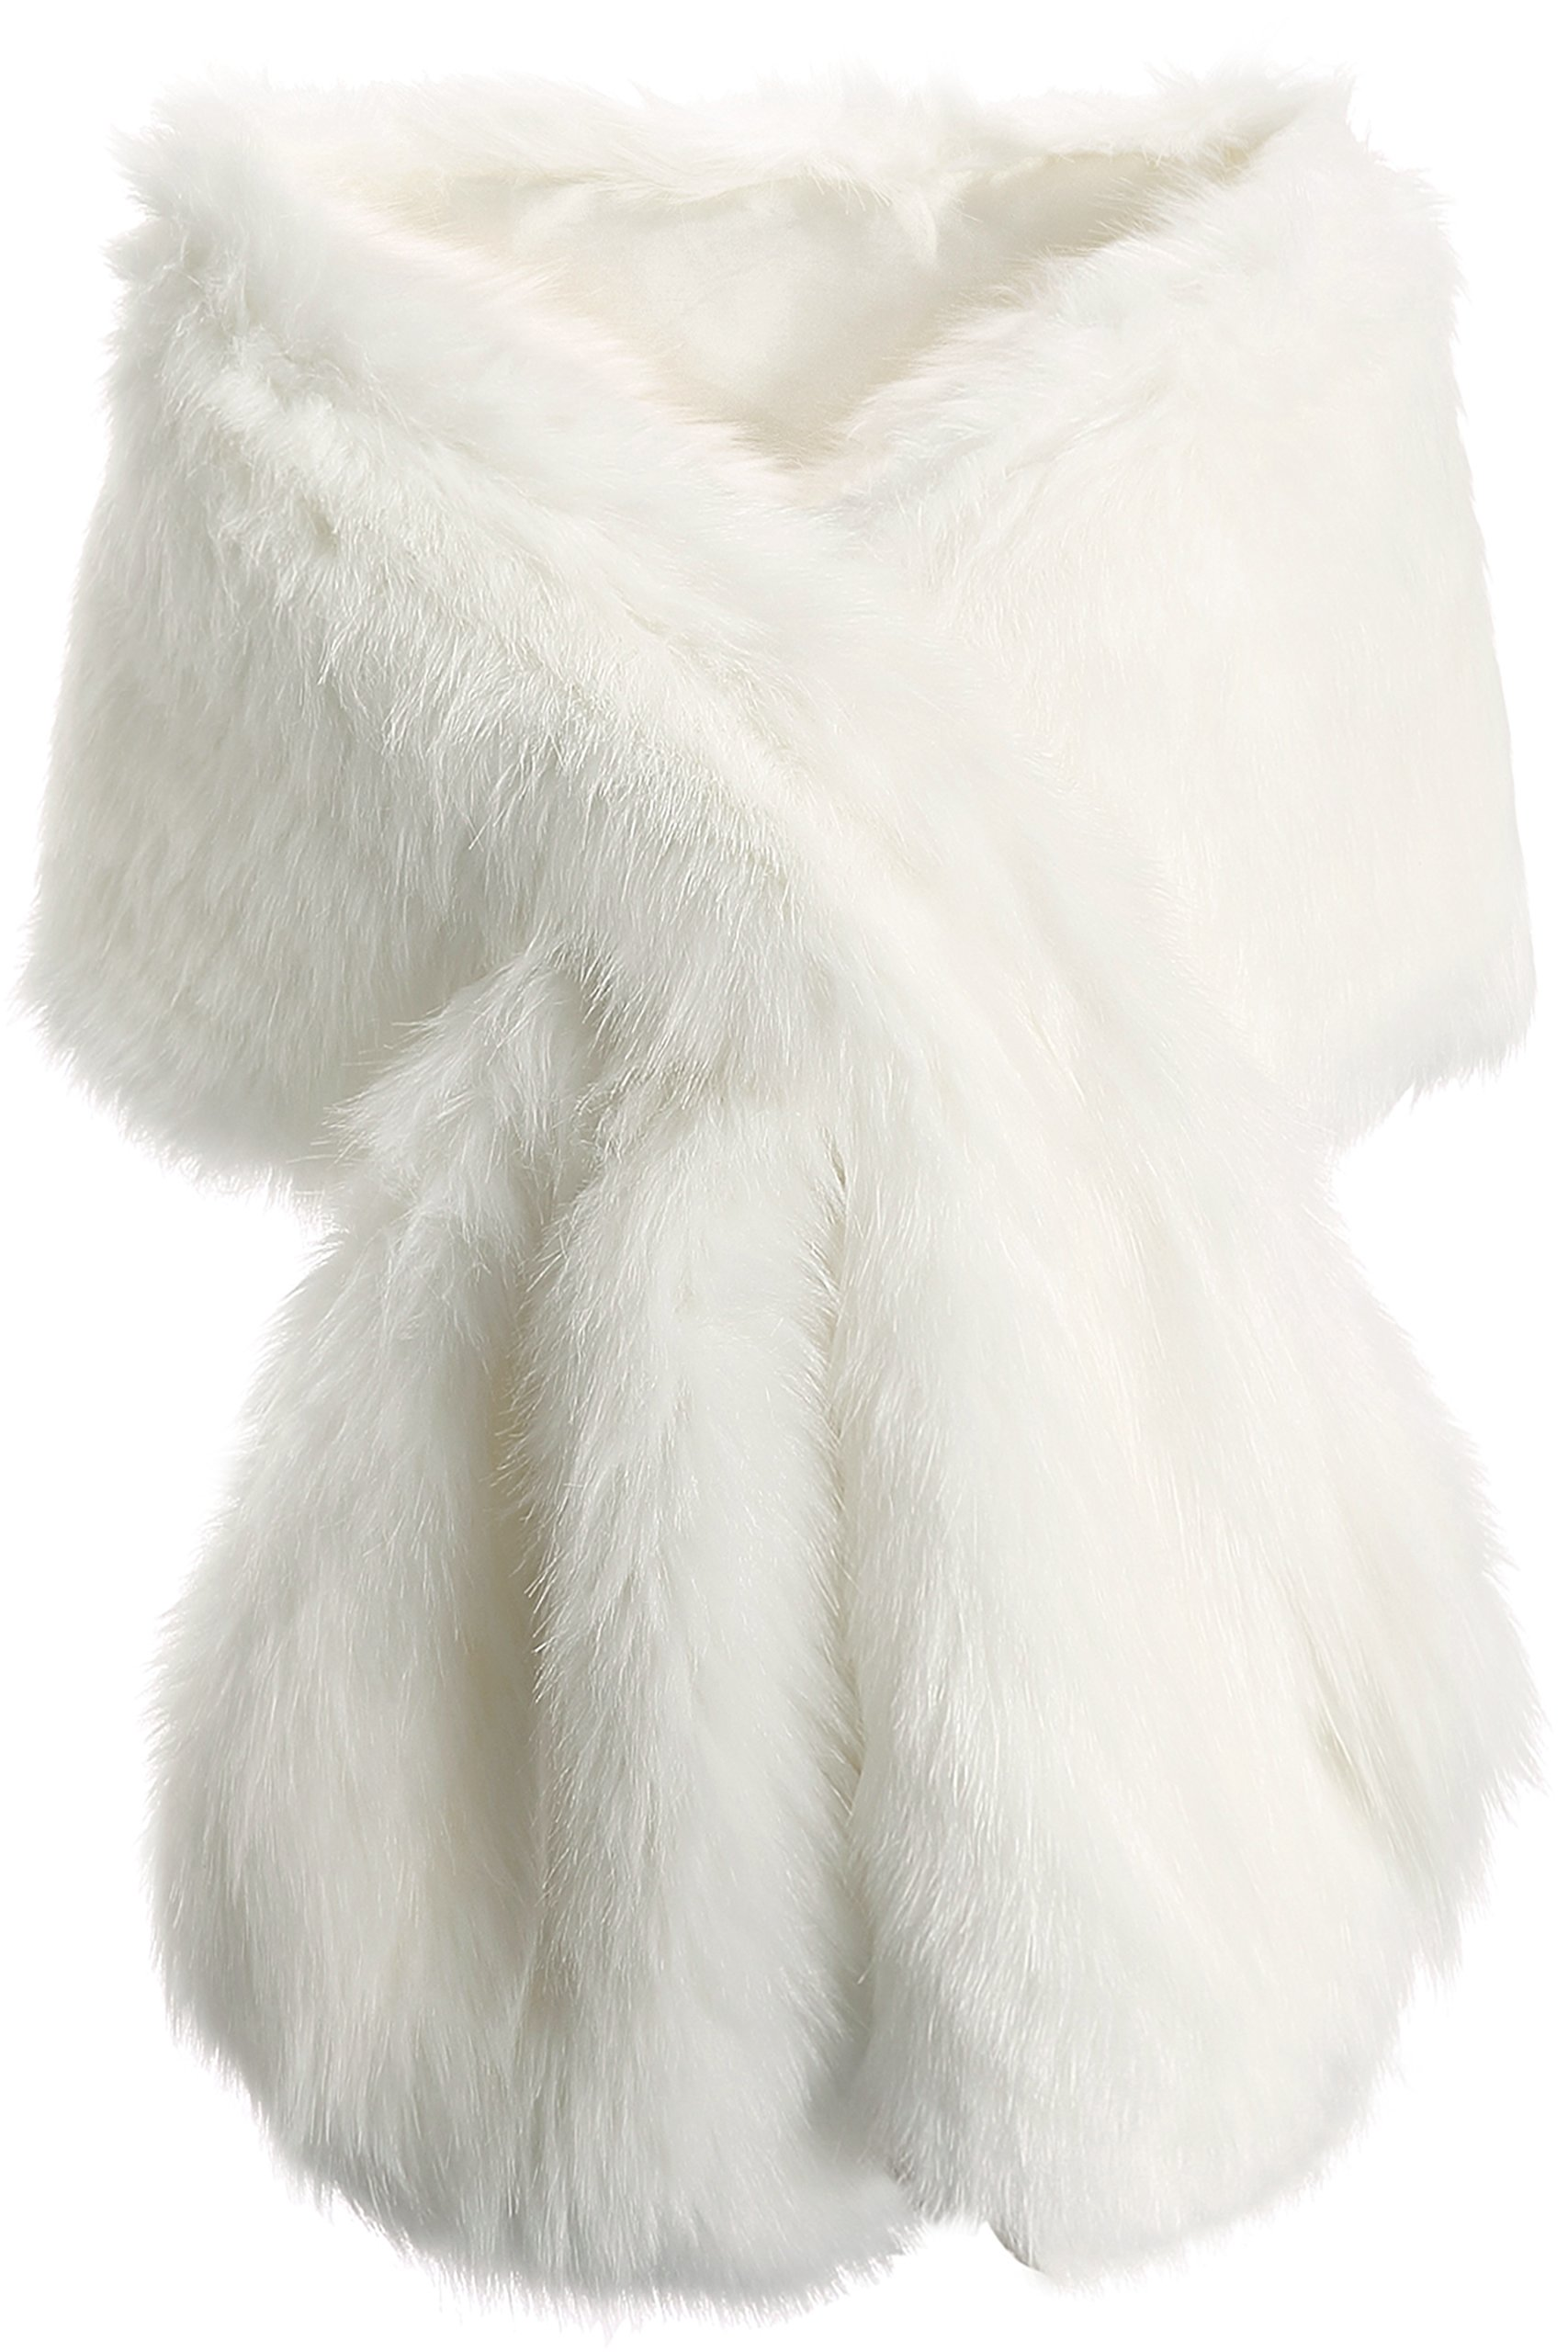 BABEYOND Womens Faux Fur Collar Shawl Faux Fur Scarf Wrap Evening Cape for Winter Coat 47.2'' (Large-White)